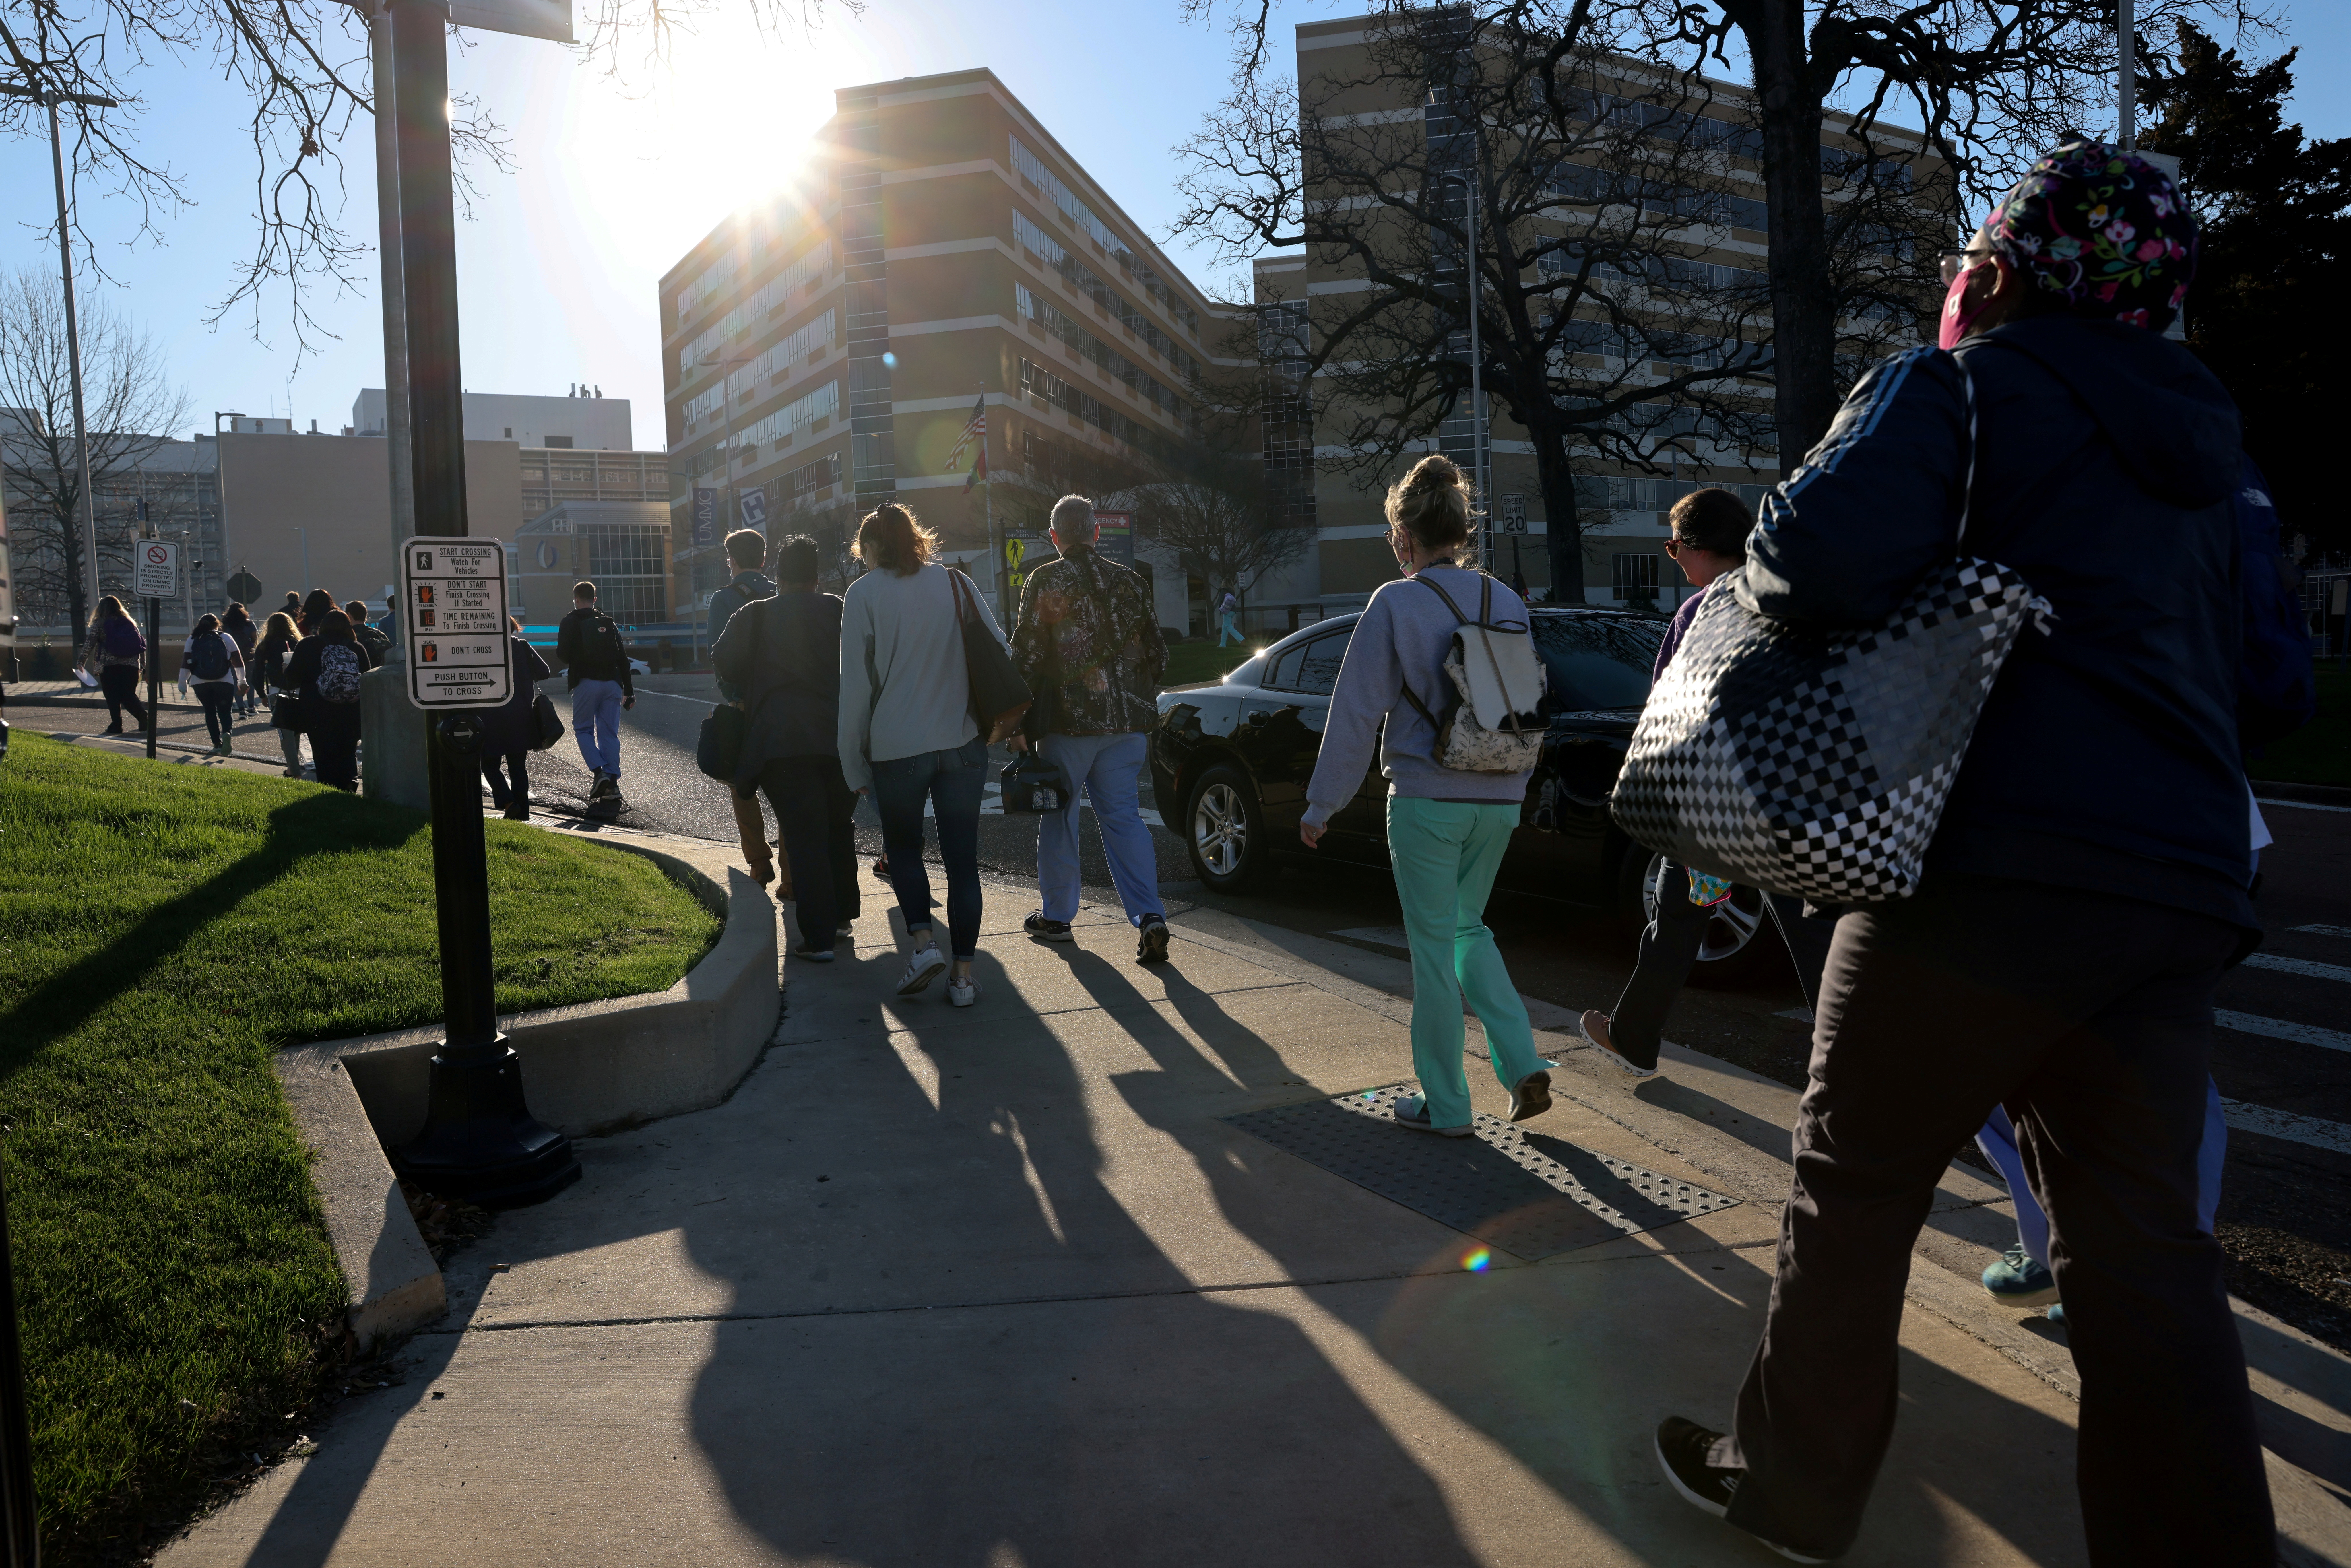 Health care workers arrive for the morning shift at the University of Mississippi Medical Center, in the state capital of one of the first U.S. states to declare themselves fully open after a year of lockdowns, and closures during the coronavirus disease (COVID-19) outbreak in Jackson, Mississippi, U.S. March 9, 2021.  REUTERS/Jonathan Ernst